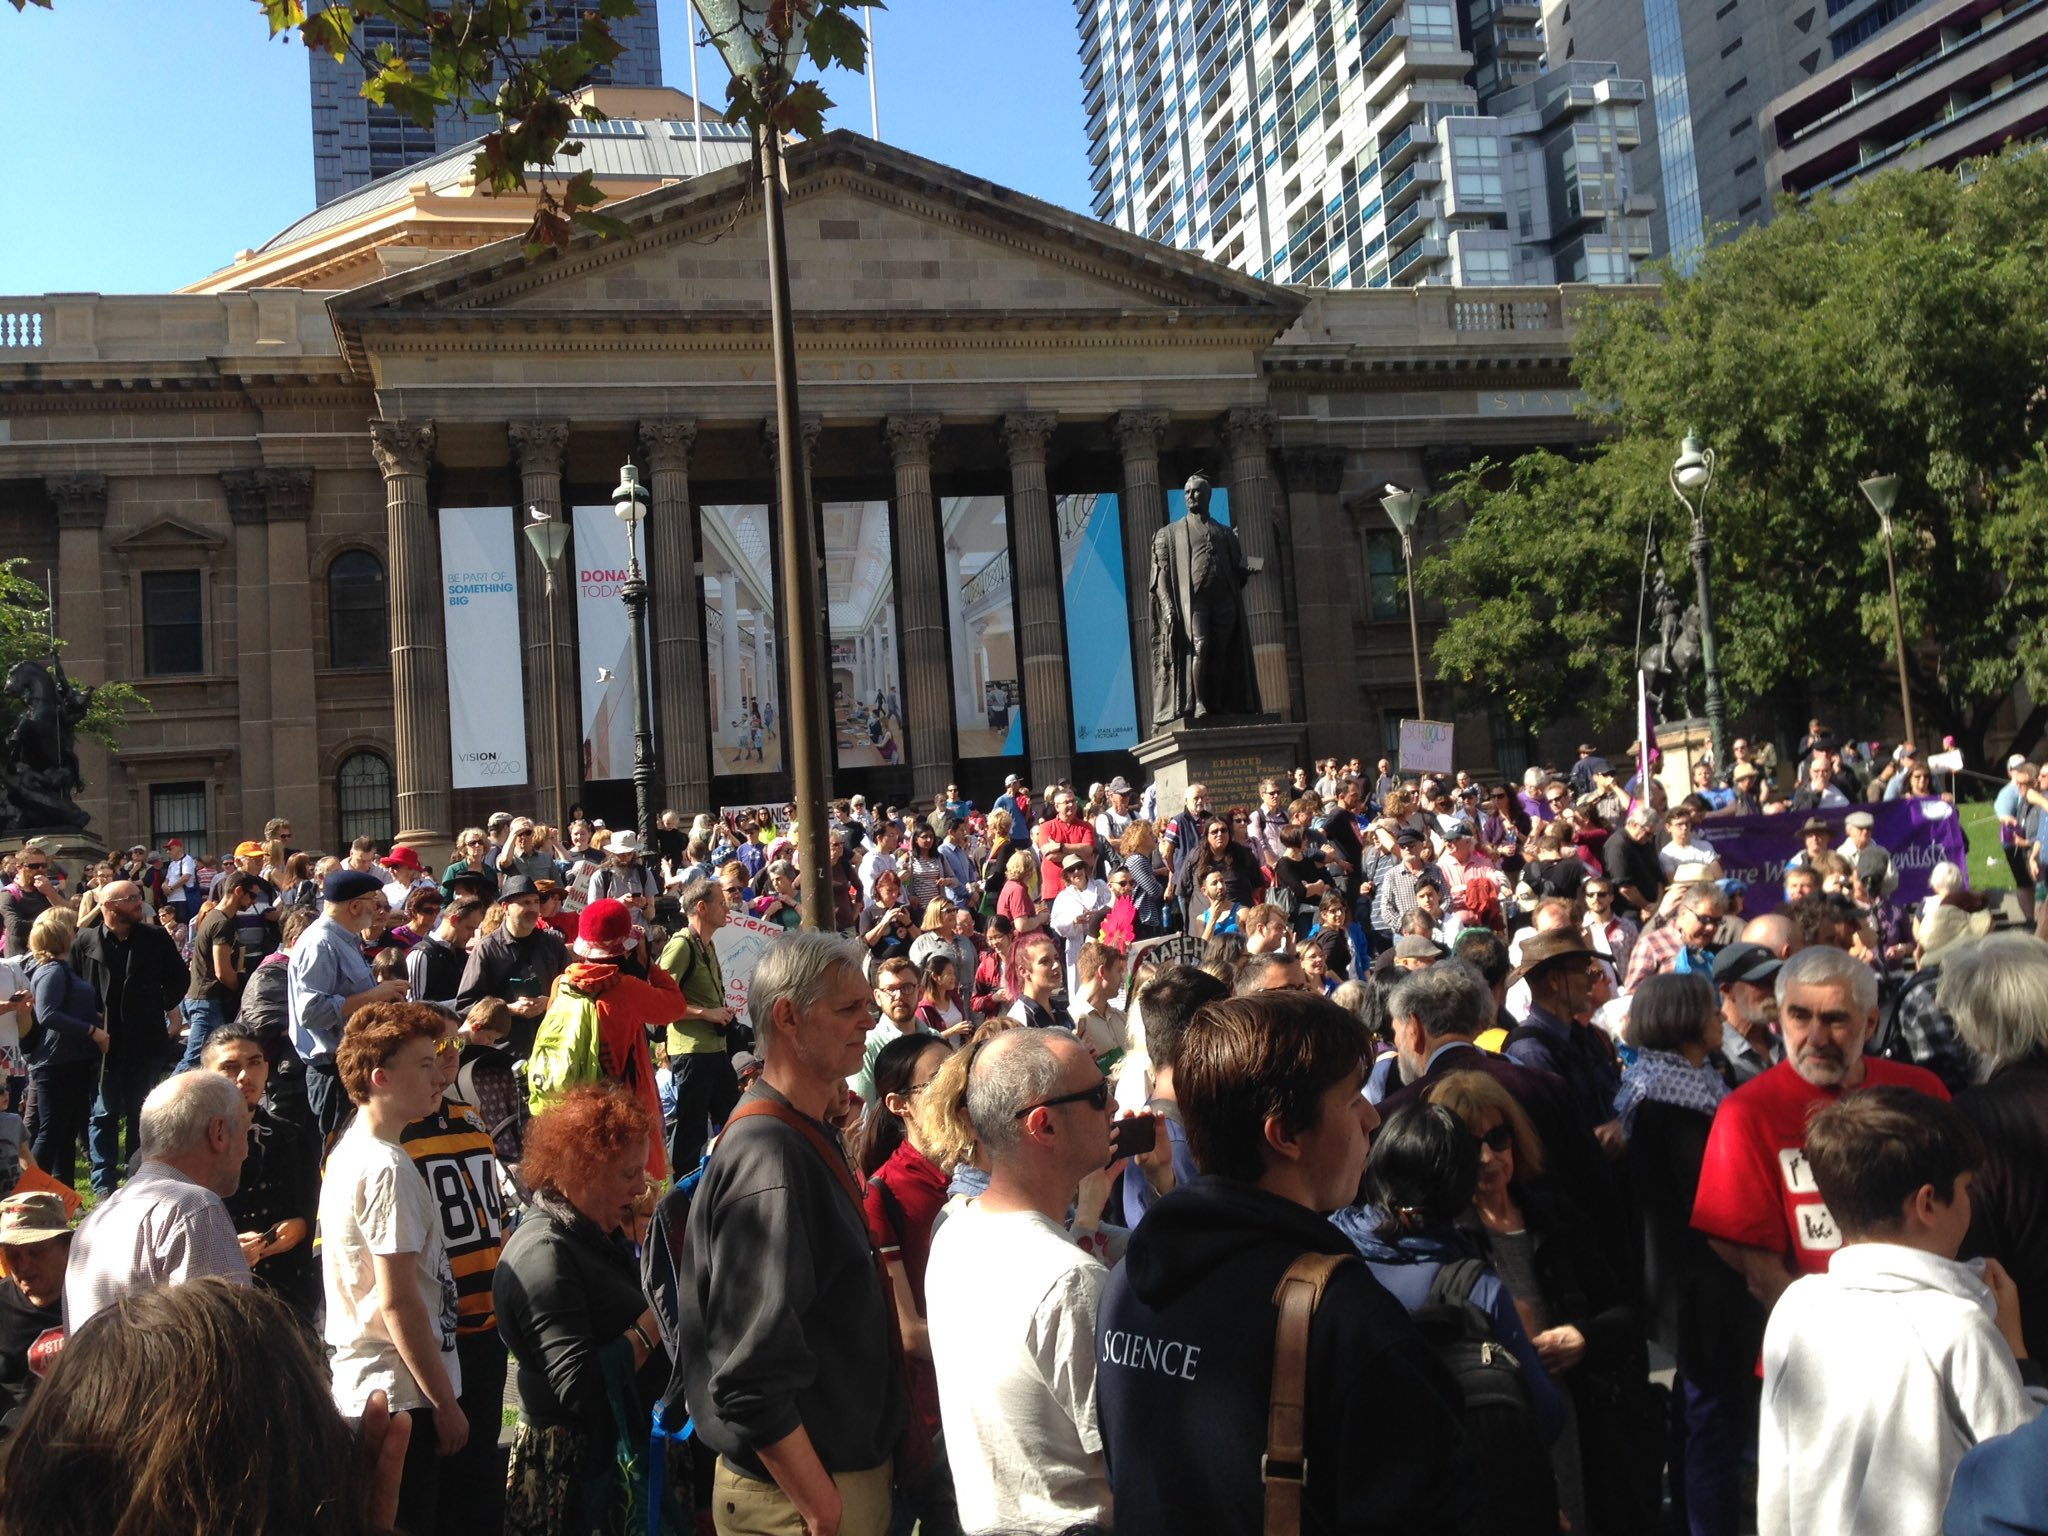 At #marchforscience all standing for good evidence based policy and protecting a safe #climate future #renewables #StopAdani #auspol https://t.co/etKx5WETu1